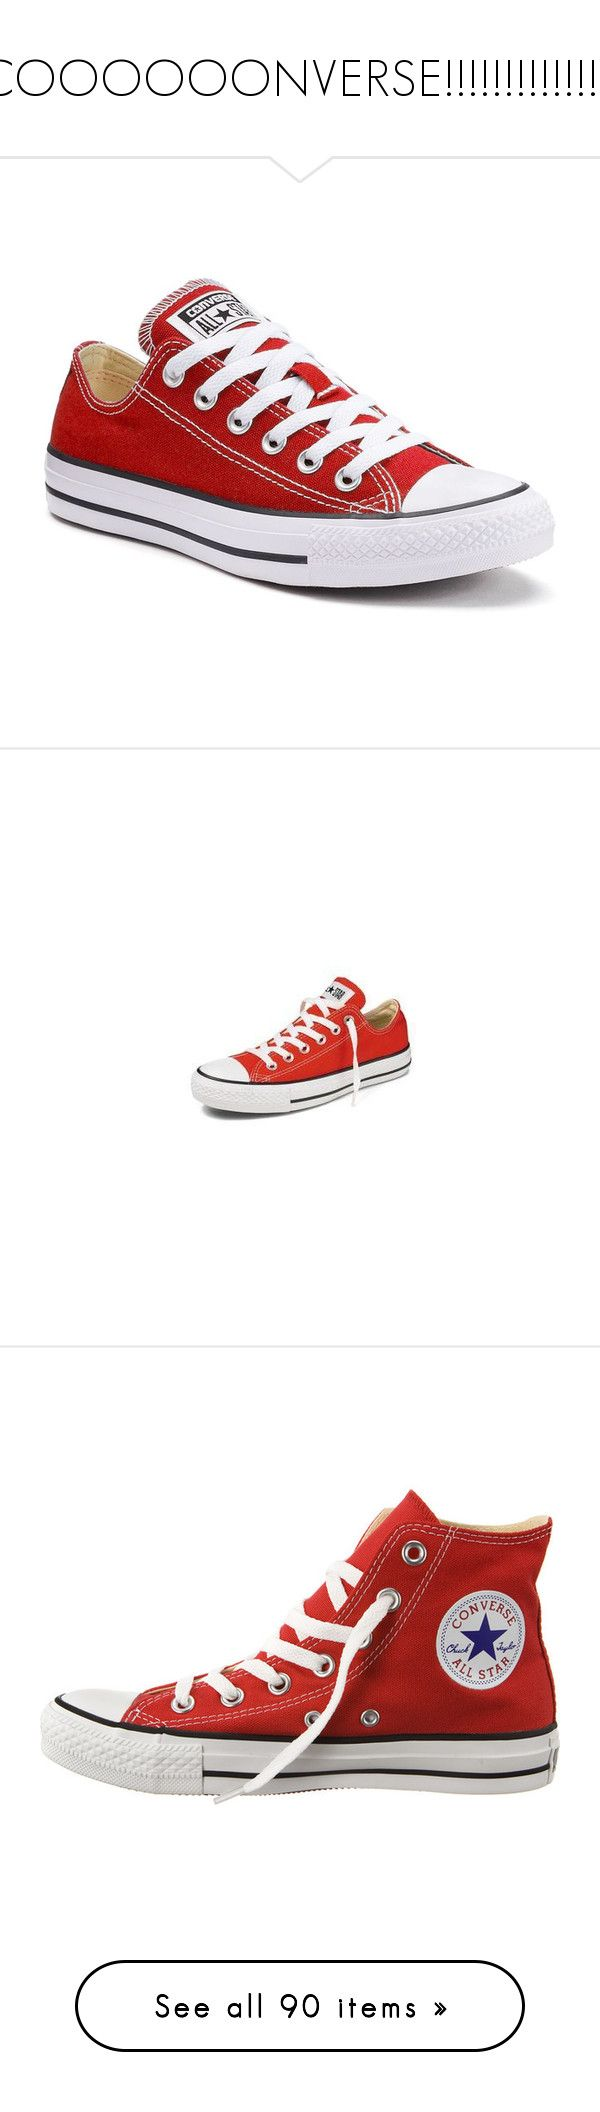 """""""COOOOOONVERSE!!!!!!!!!!!!!!!"""" by gussied-up on Polyvore featuring shoes, sneakers, converse, converse sneakers, hi top canvas sneakers, hi tops, retro sneakers, retro hi tops, red and lace up sneakers"""